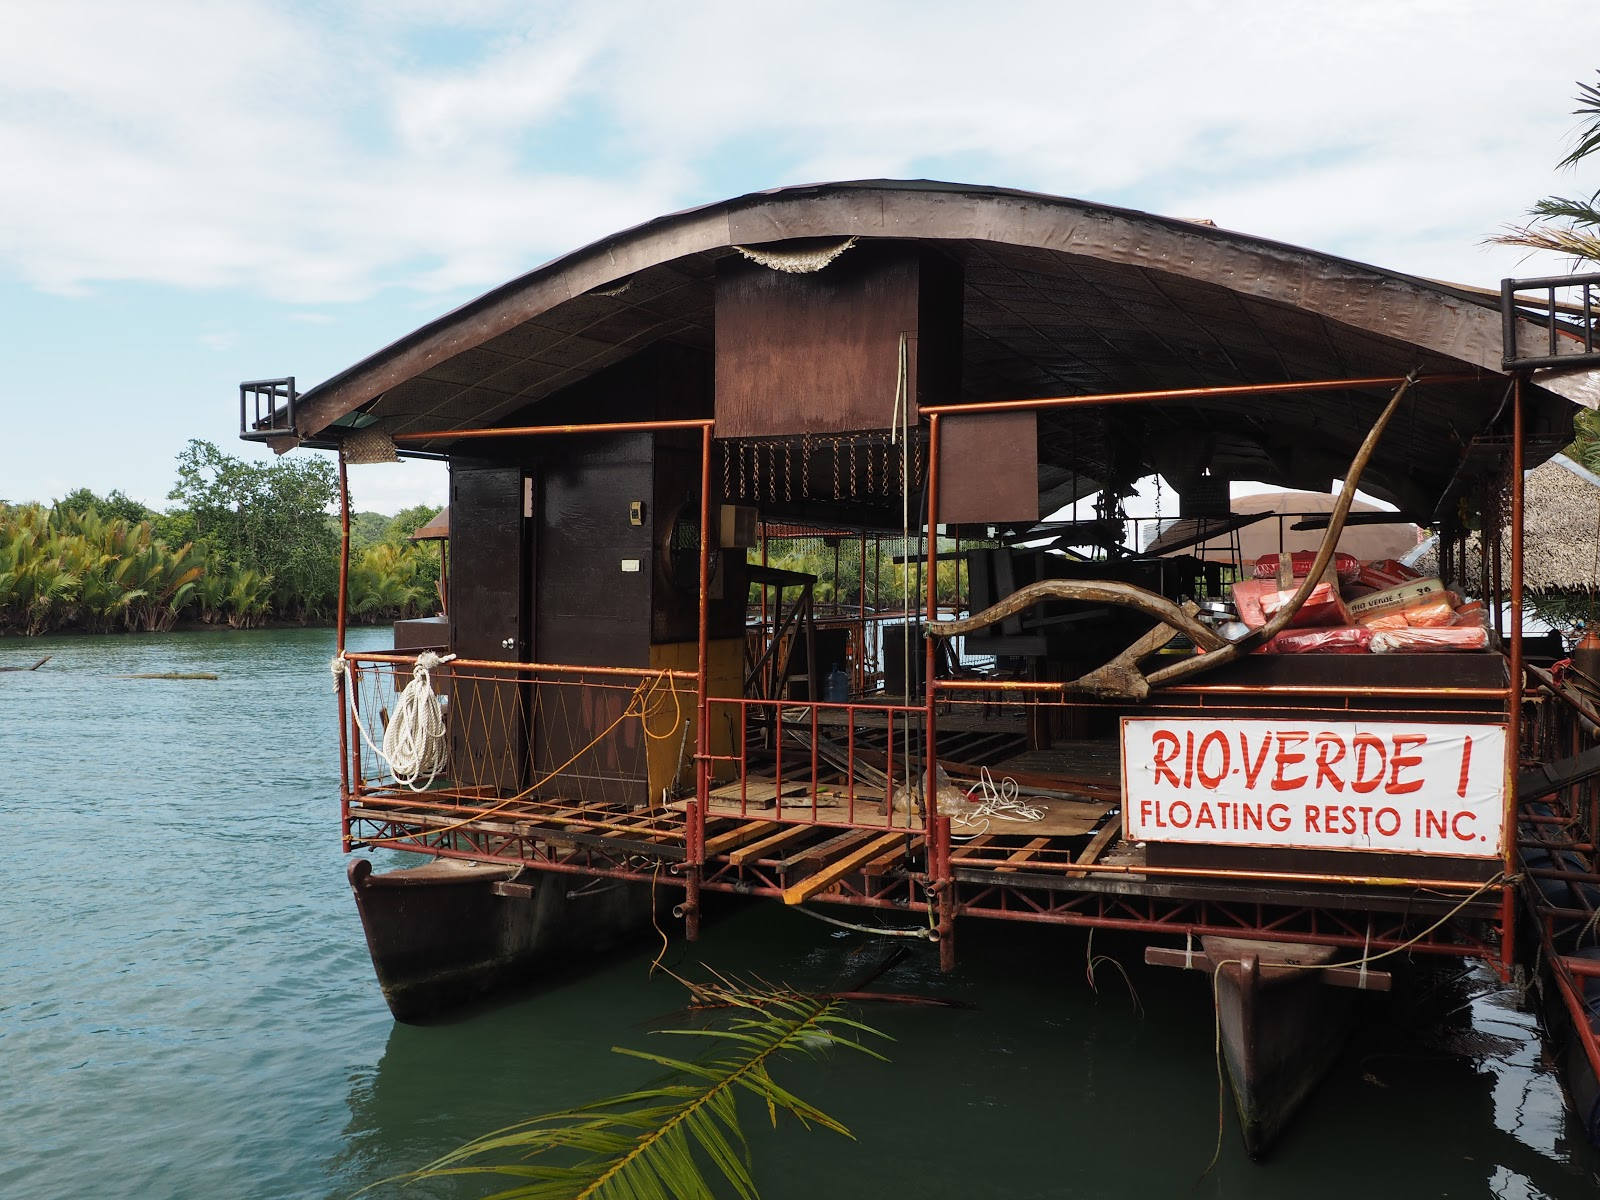 Rioverde Floating Restauant, Bohol